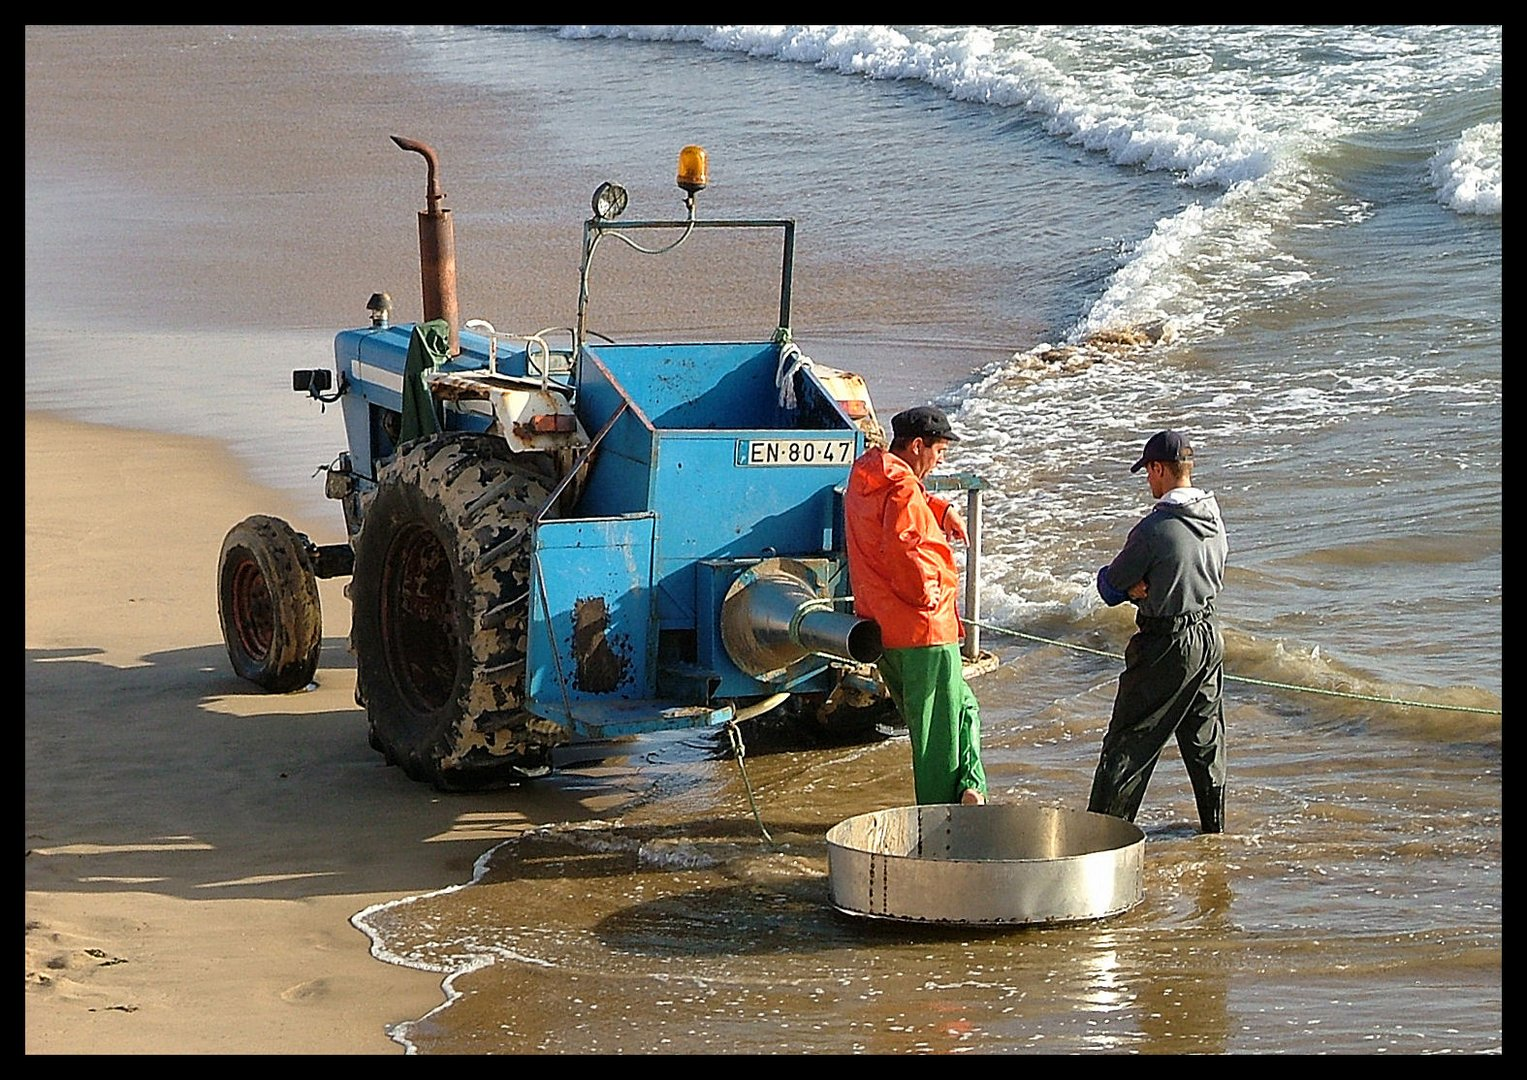 Waiting for the fishing boat